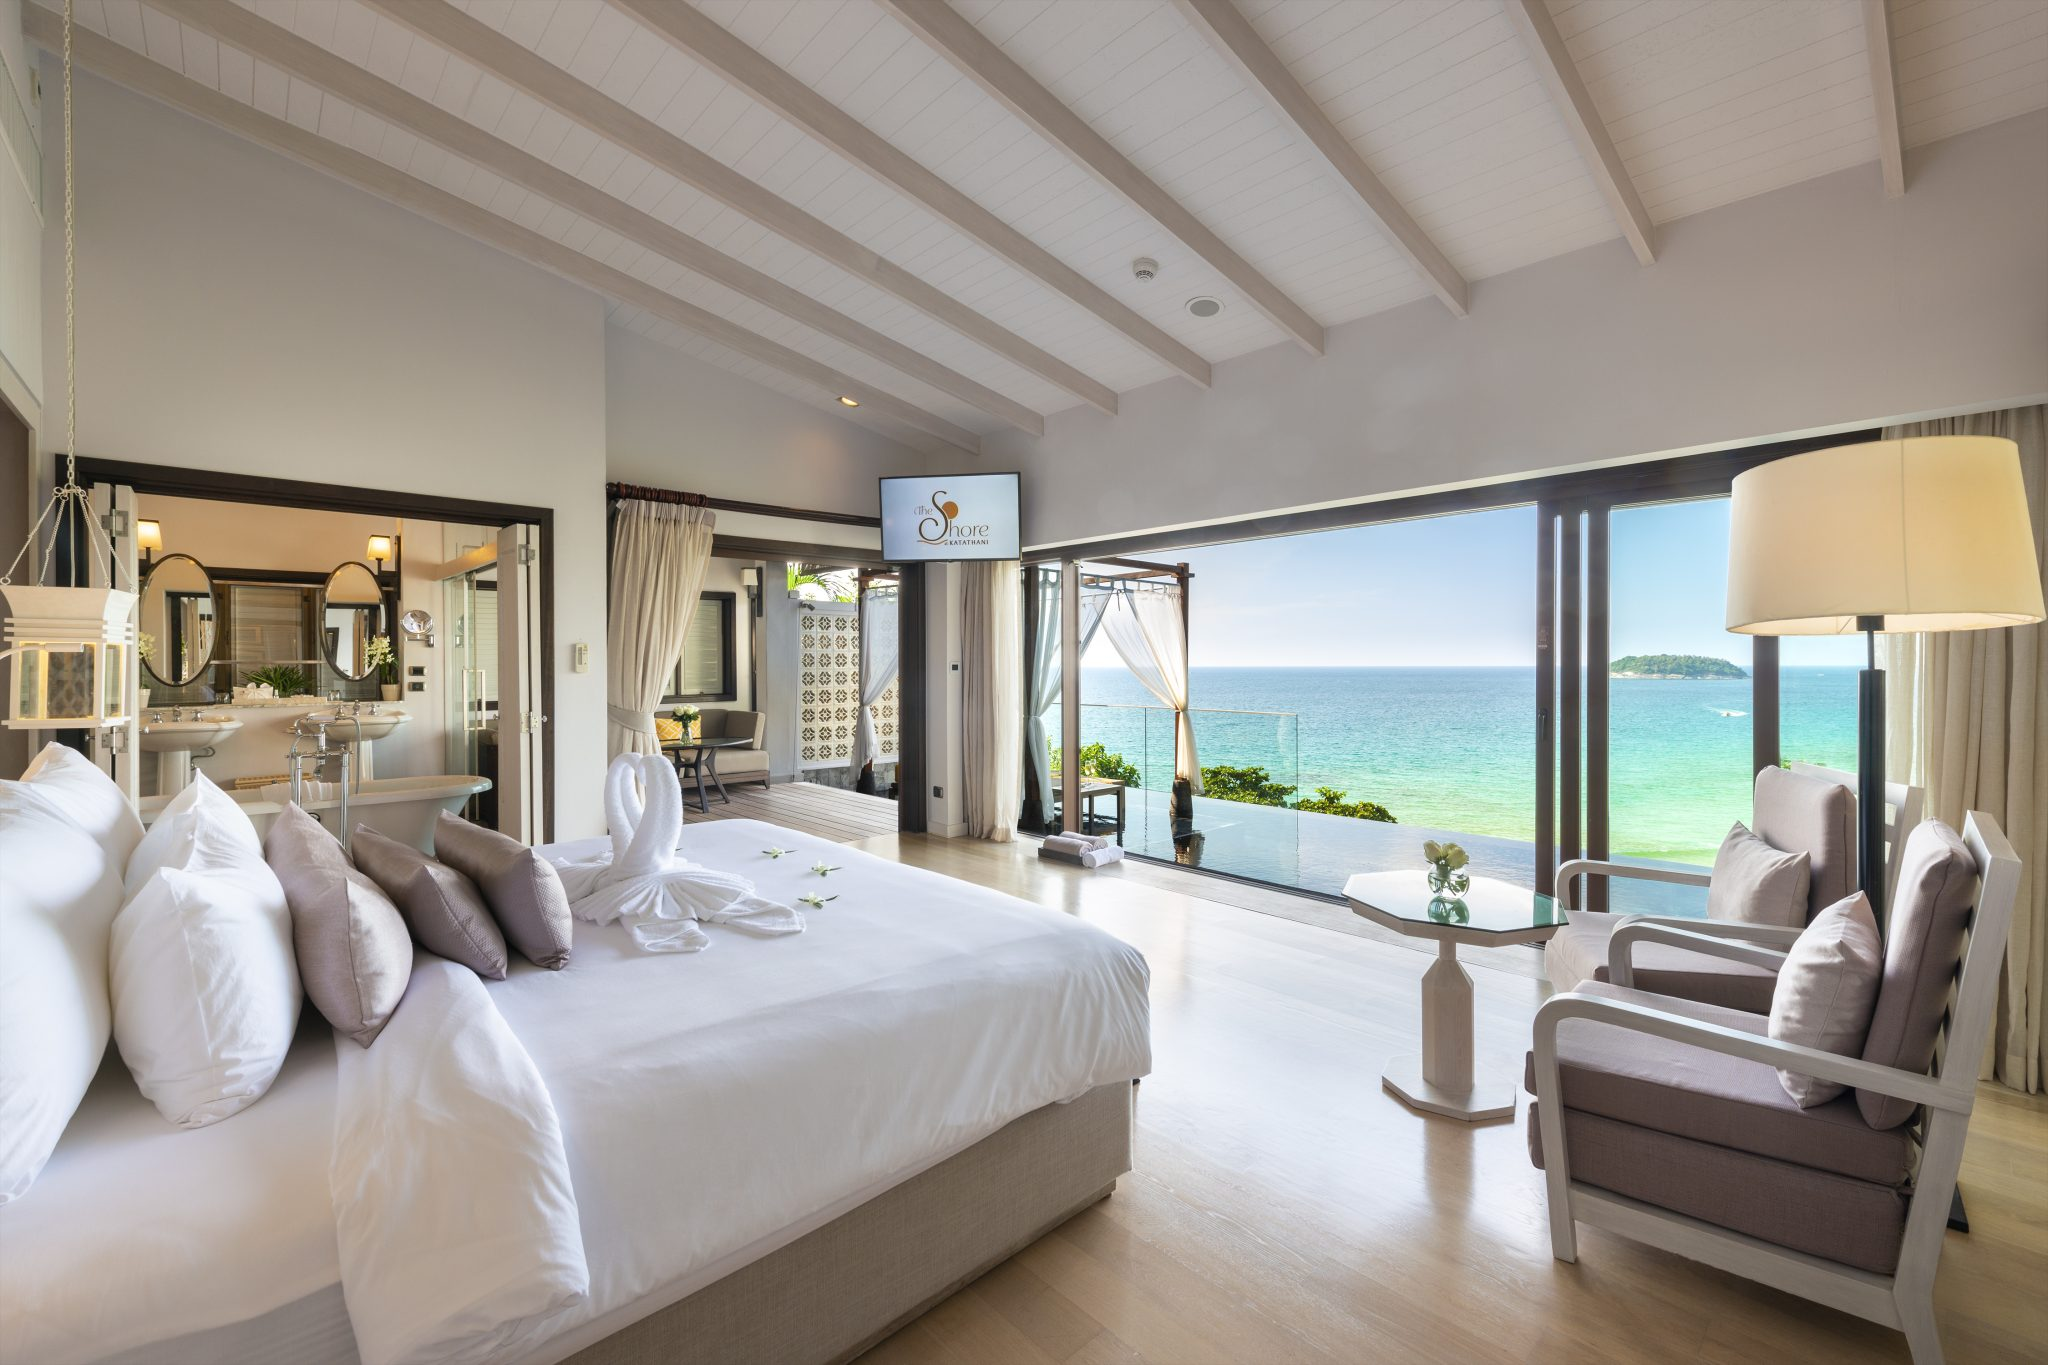 The-Shore-at-Katathani-Seaview-Pool-Villa-bedroom-view